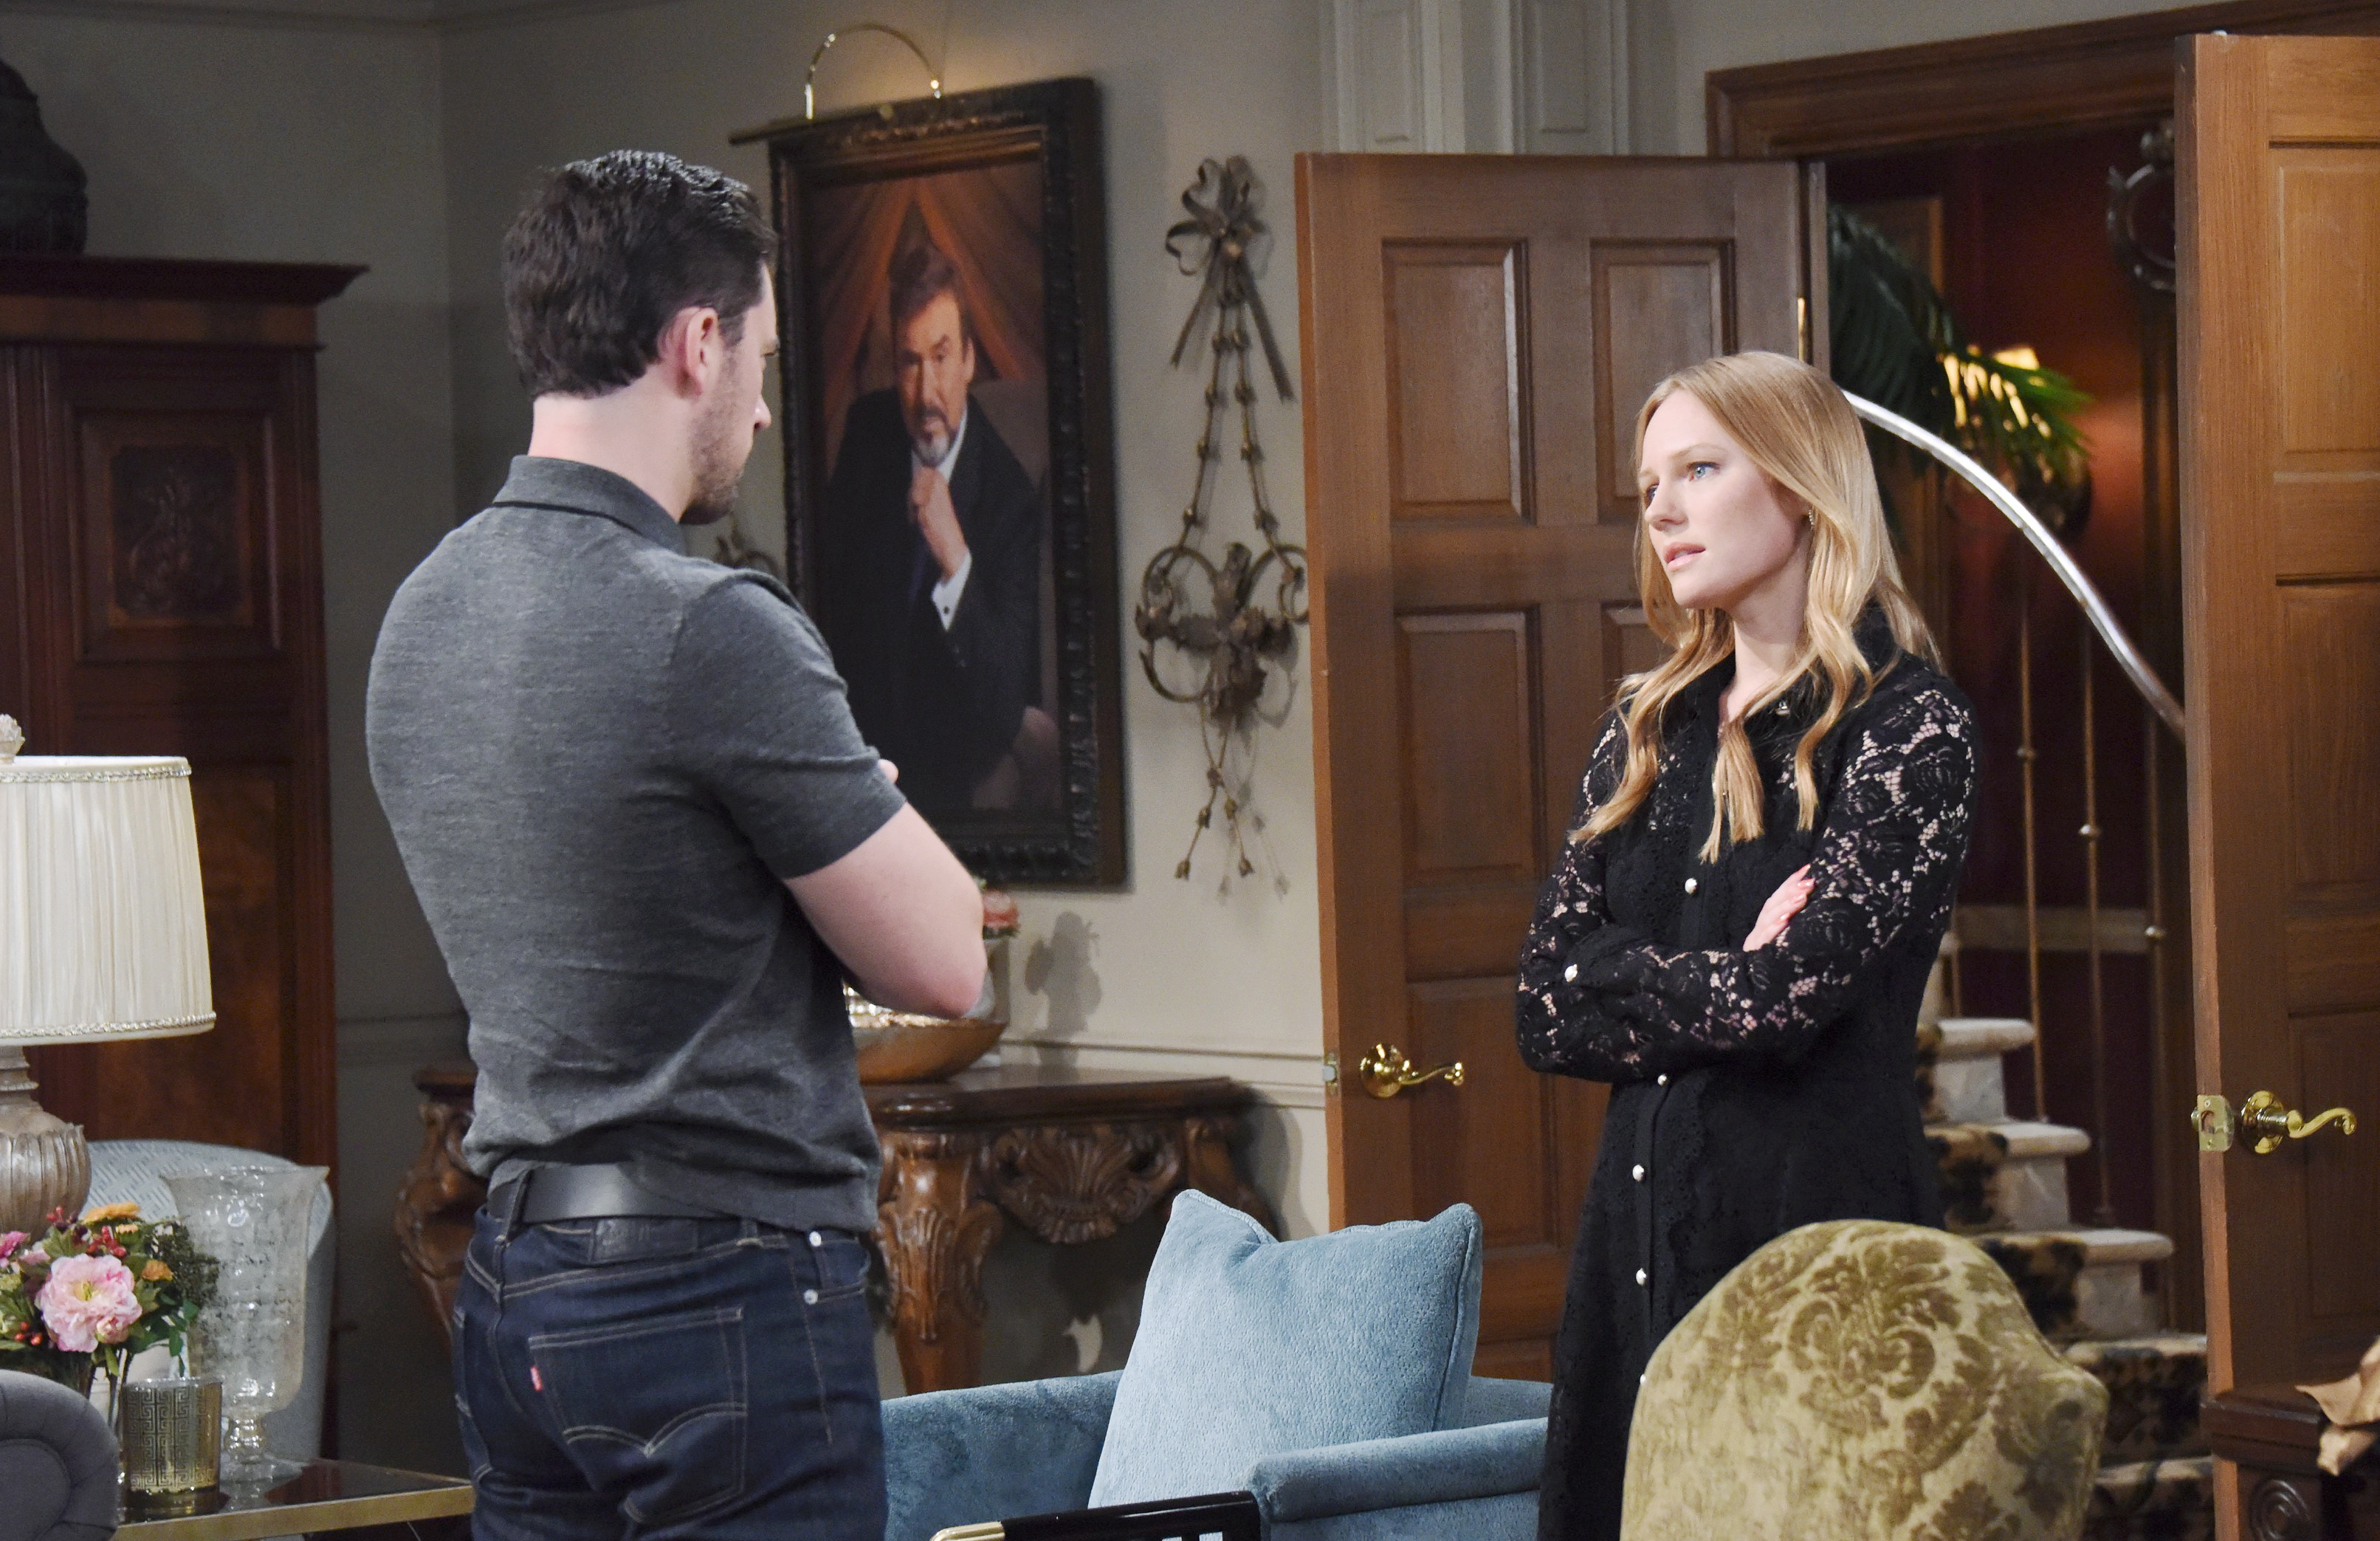 Days Of Our Lives Spoilers: Abigail asks Chad to reconsider throwing Andre out of the mansion.